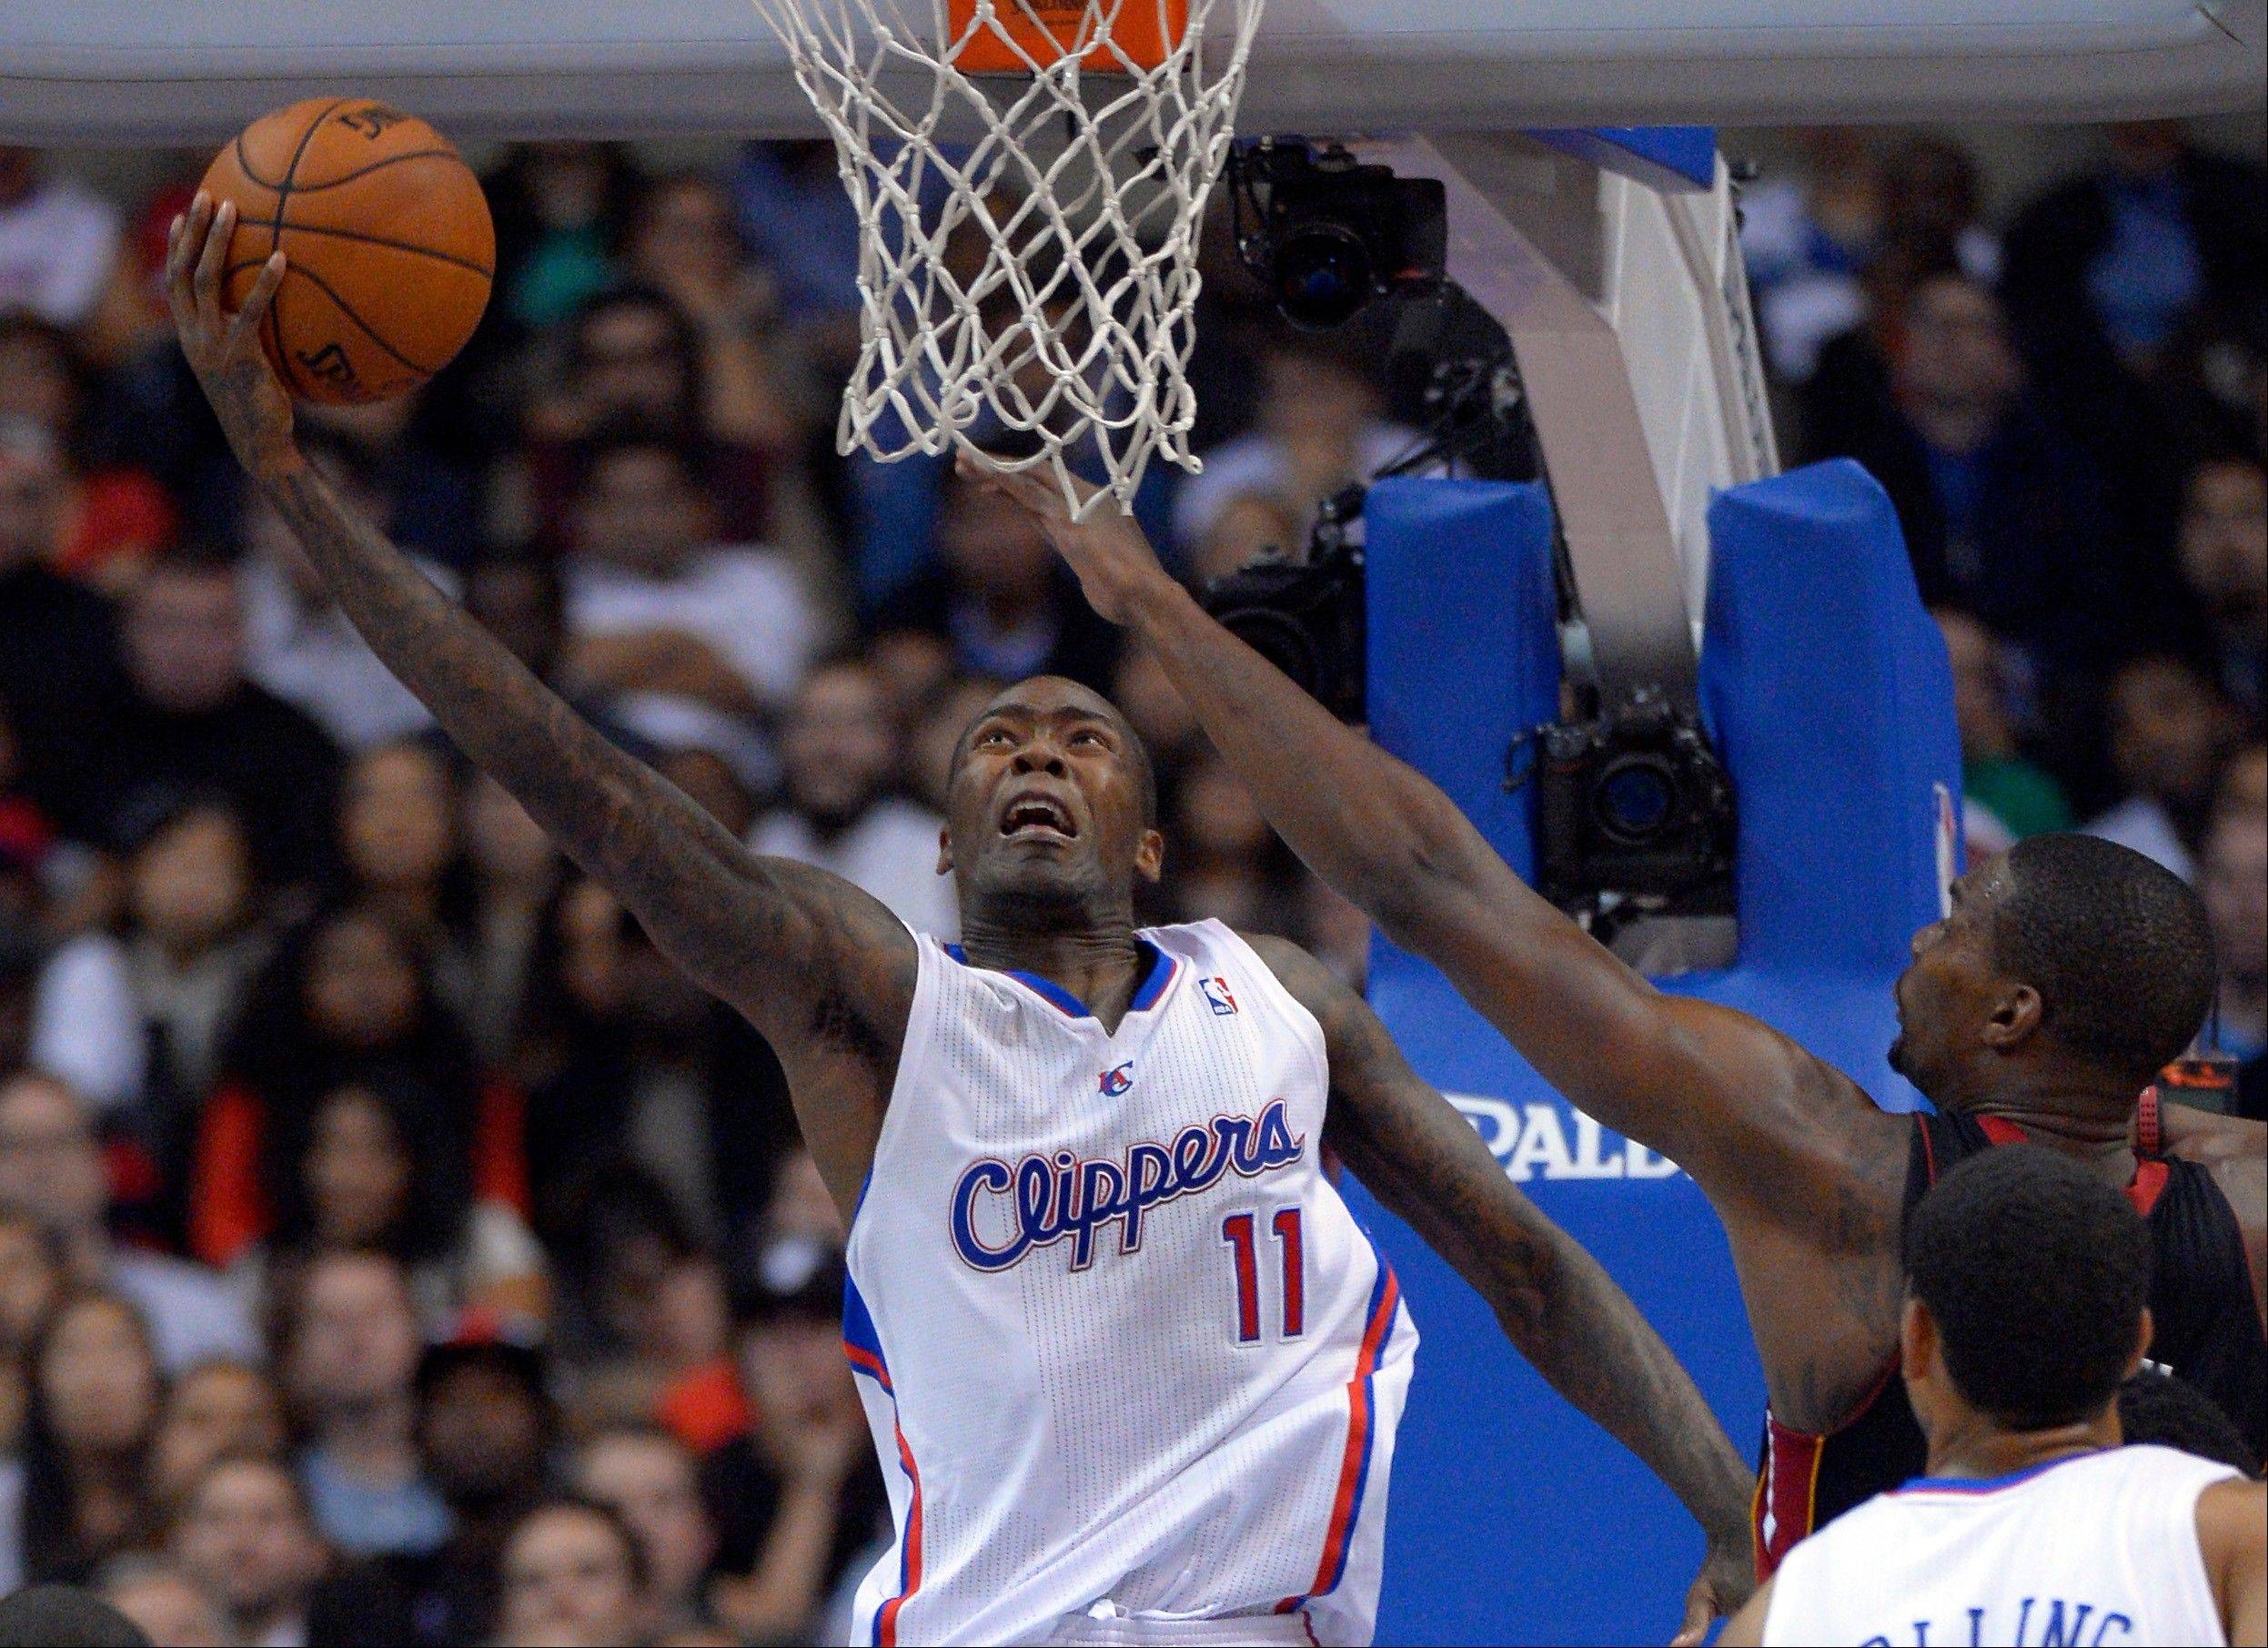 Jamal Crawford is averaging 20.5 points per game and shooting 51.4 percent from the floor for the 6-2 Clippers.